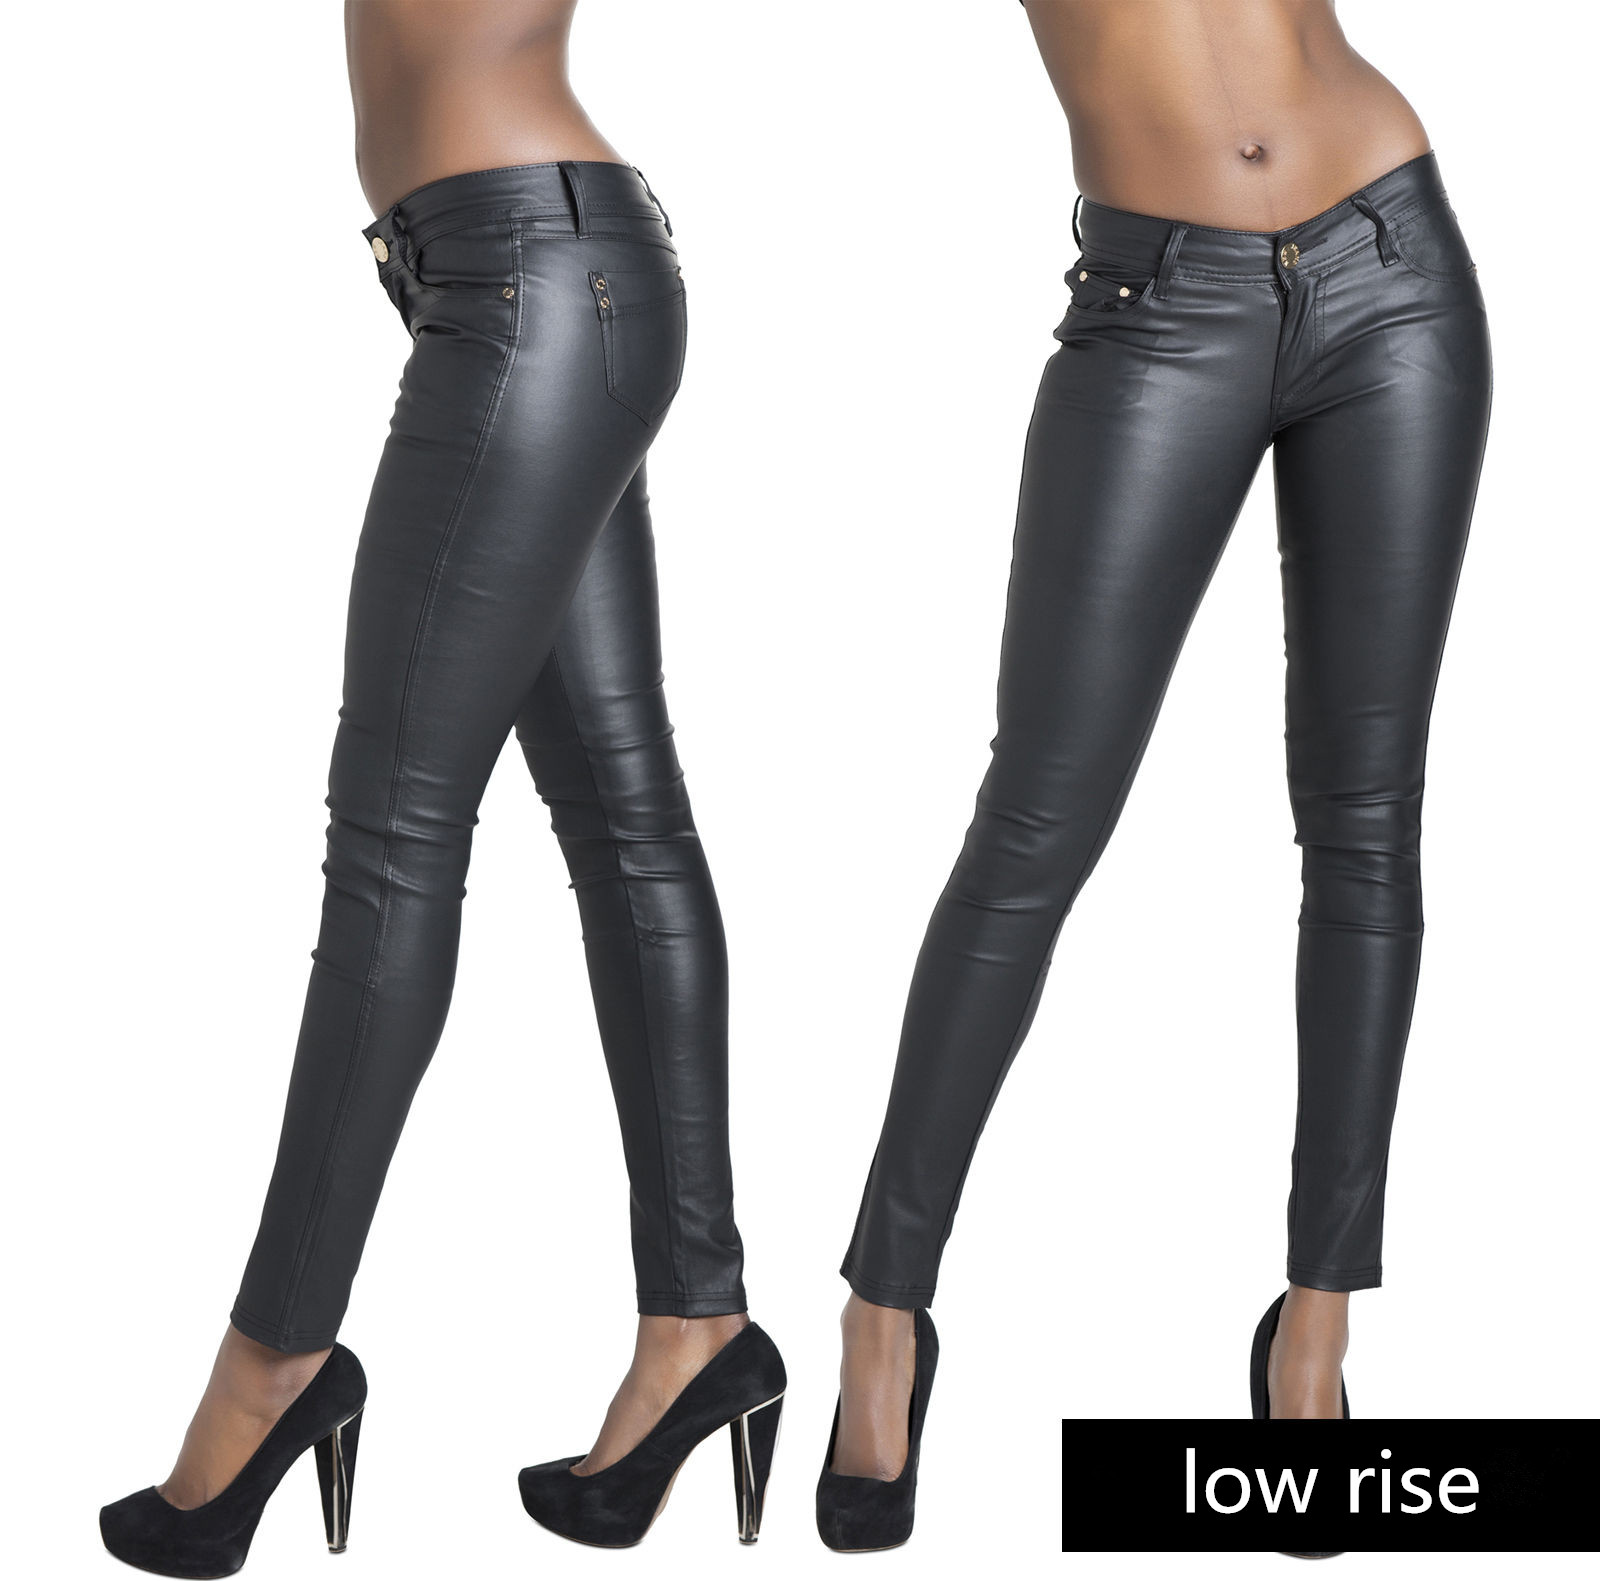 Leather Pants. invalid category id. Leather Pants. Showing 48 of results that match your query. Search Product Result. Product - HDE Sexy Faux Leather Leggings High Waisted Tight Pants for Women. Product Image. Price $ Product Title. HDE Sexy Faux Leather Leggings High Waisted Tight Pants for Women.